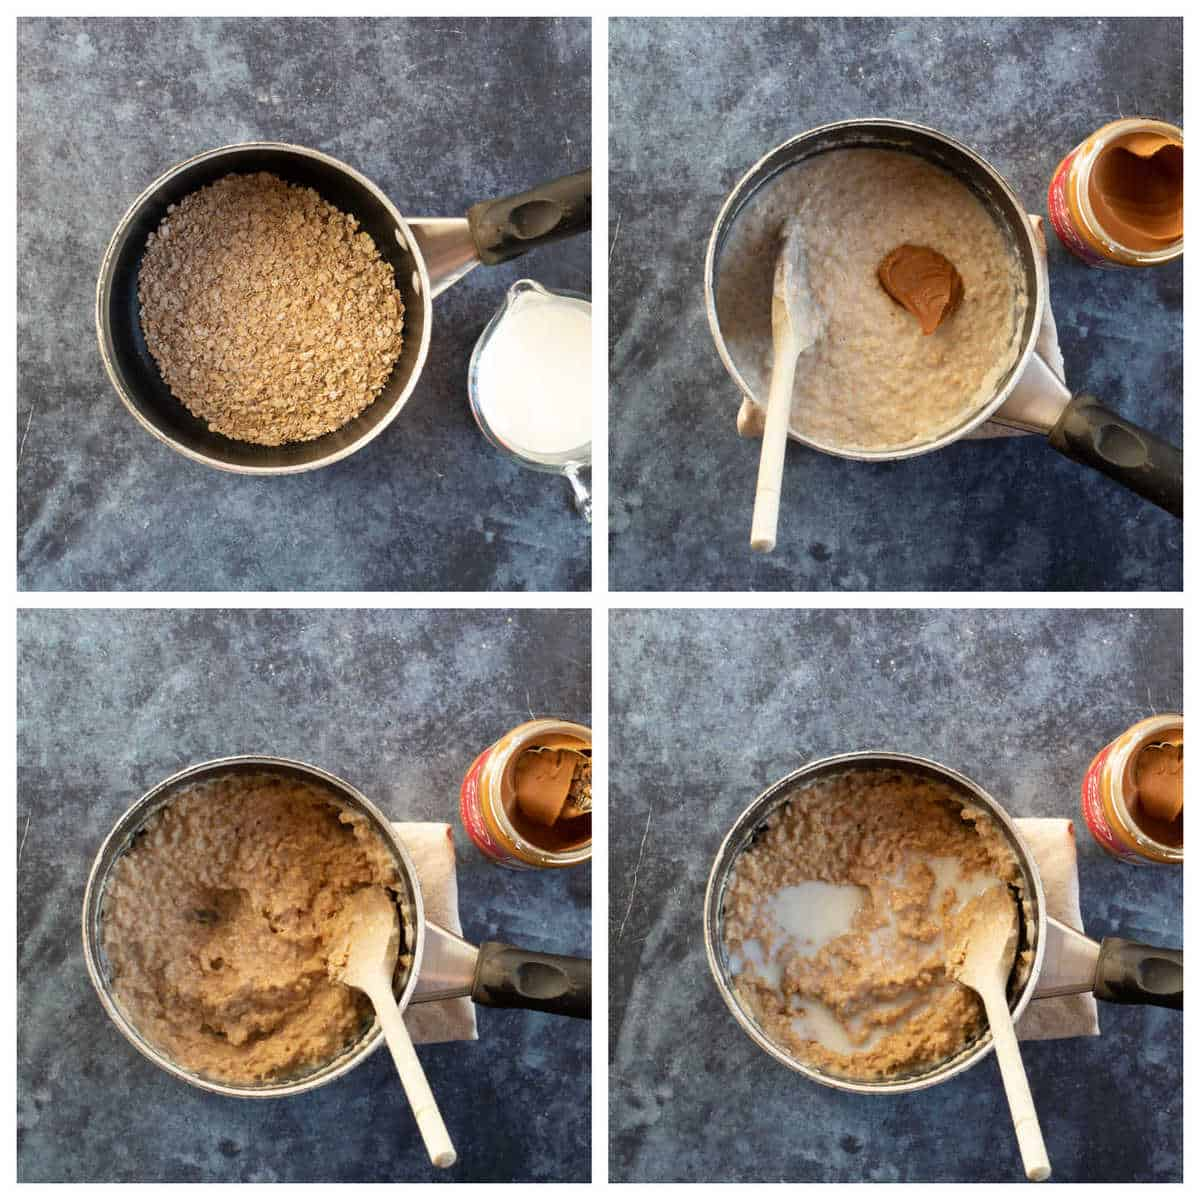 Step by step photo instructions for making Biscoff porridge.